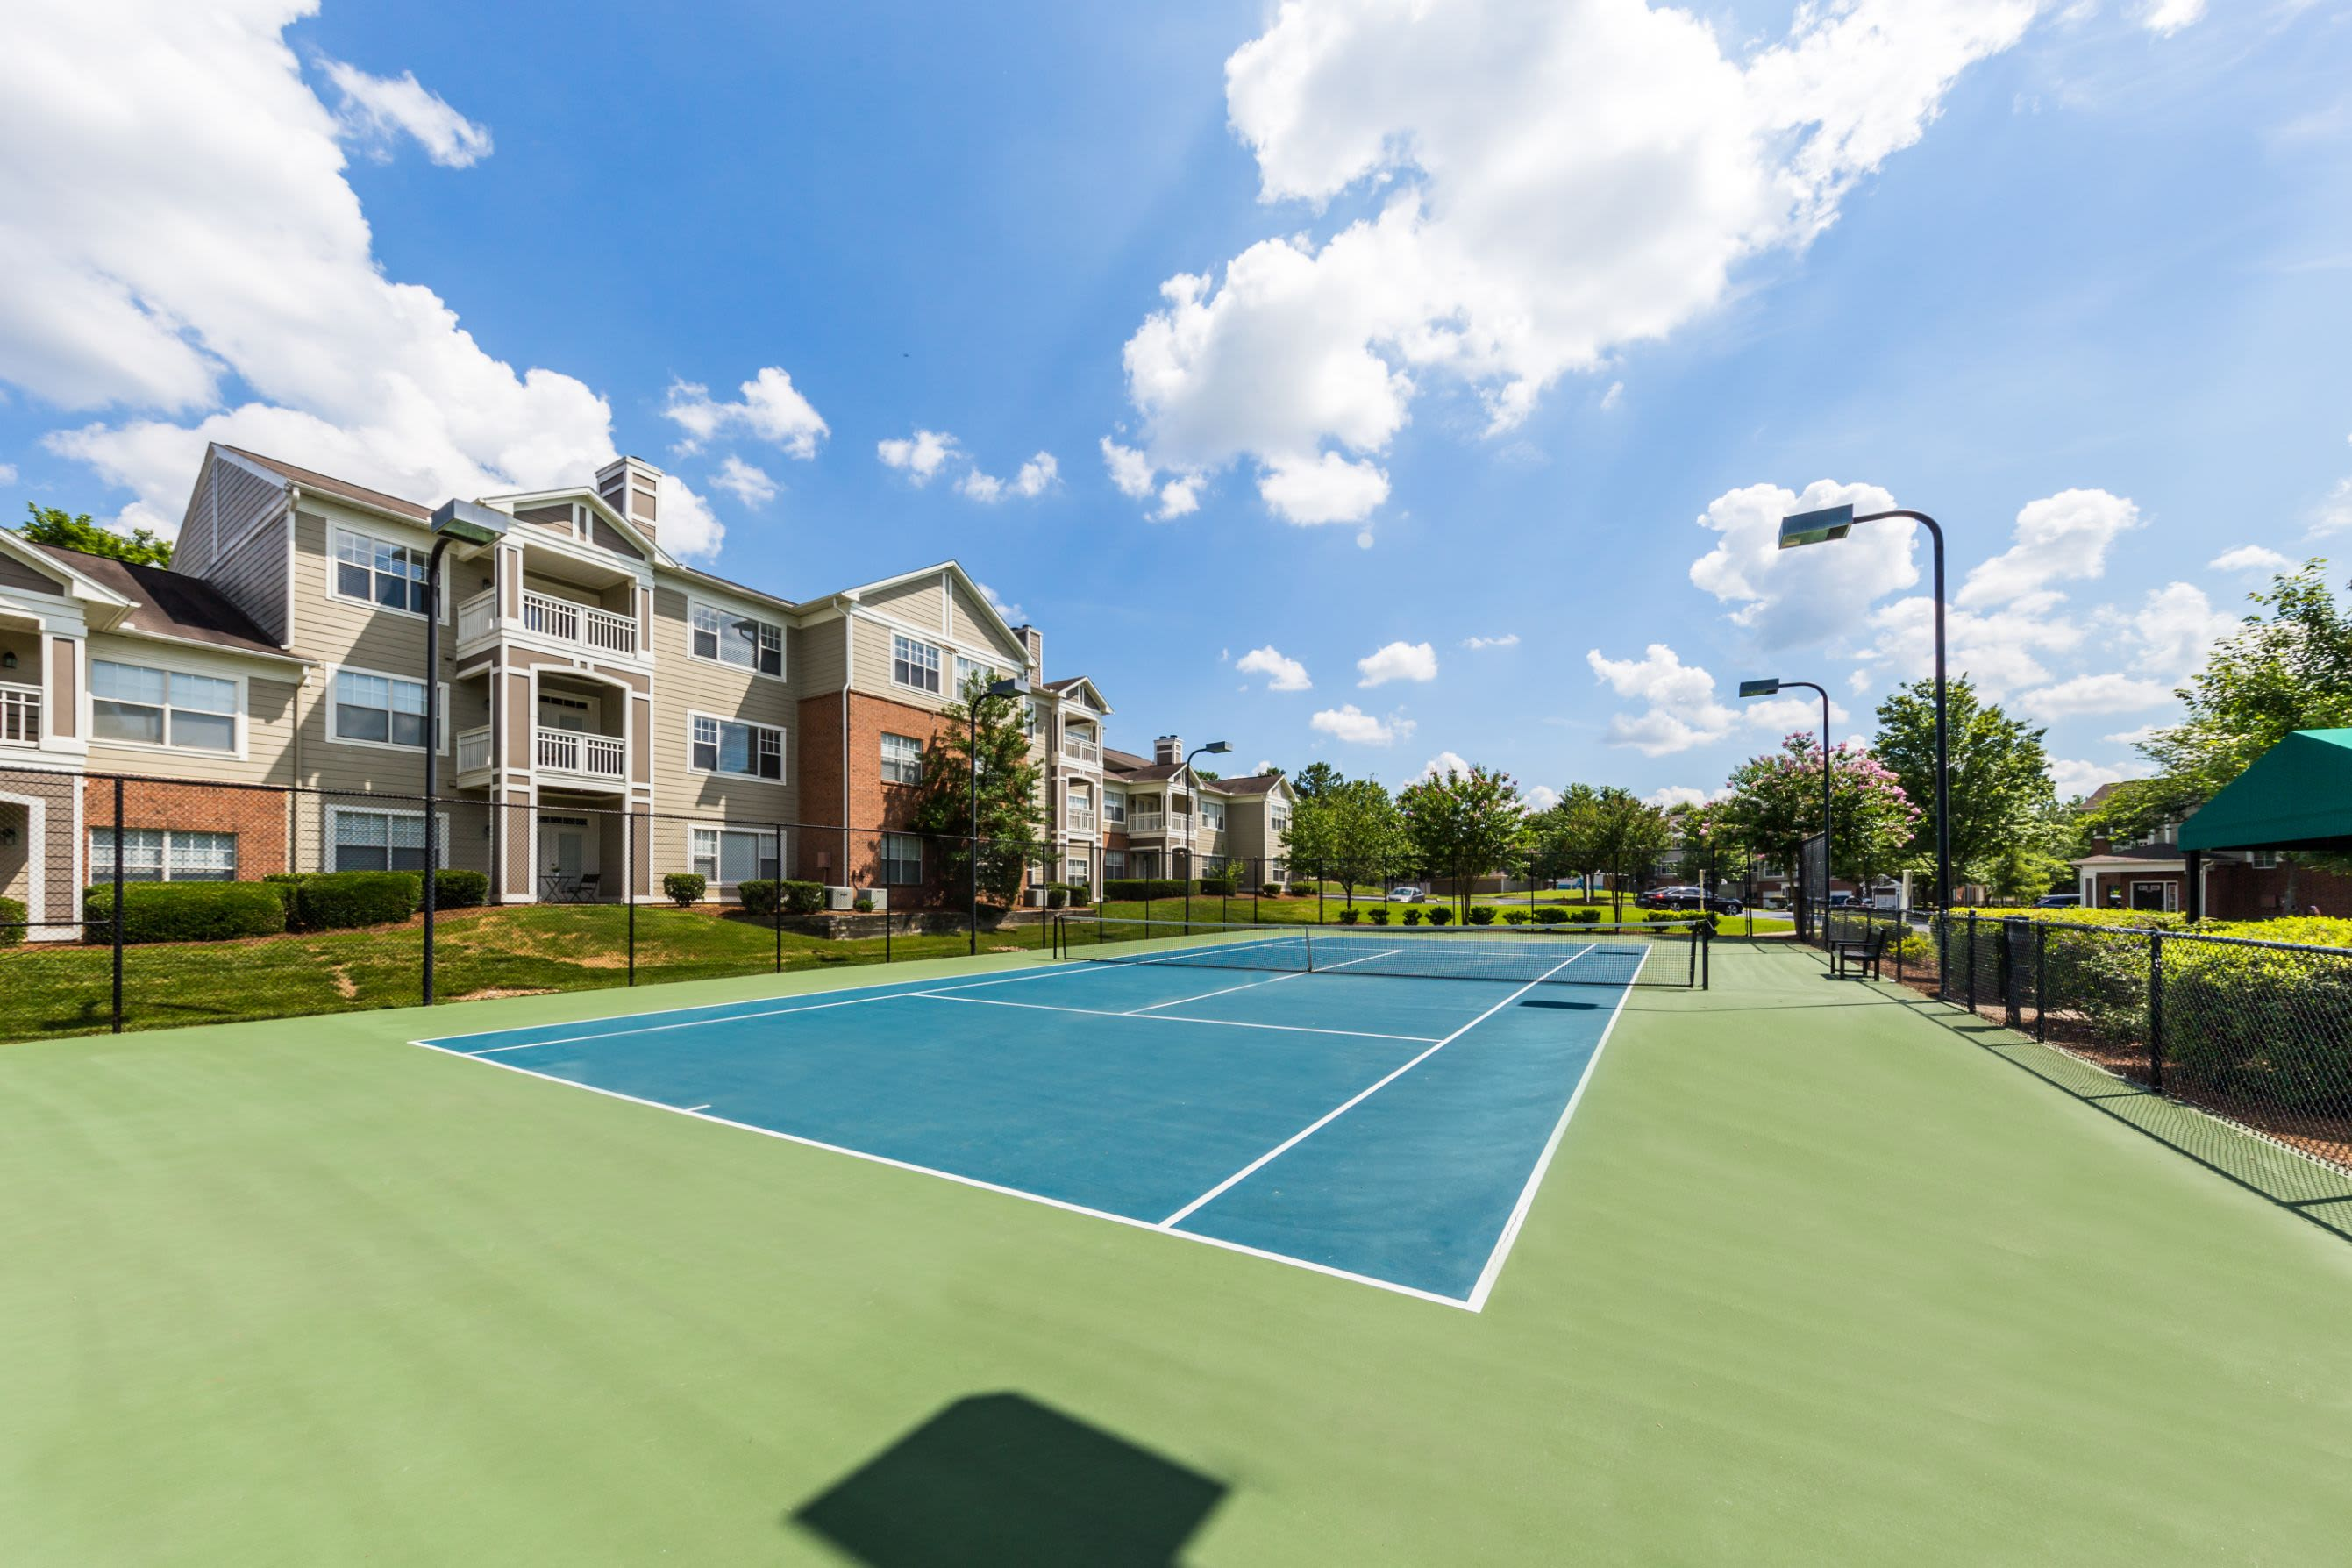 Tennis court at The Preserve at Ballantyne Commons in Charlotte, North Carolina